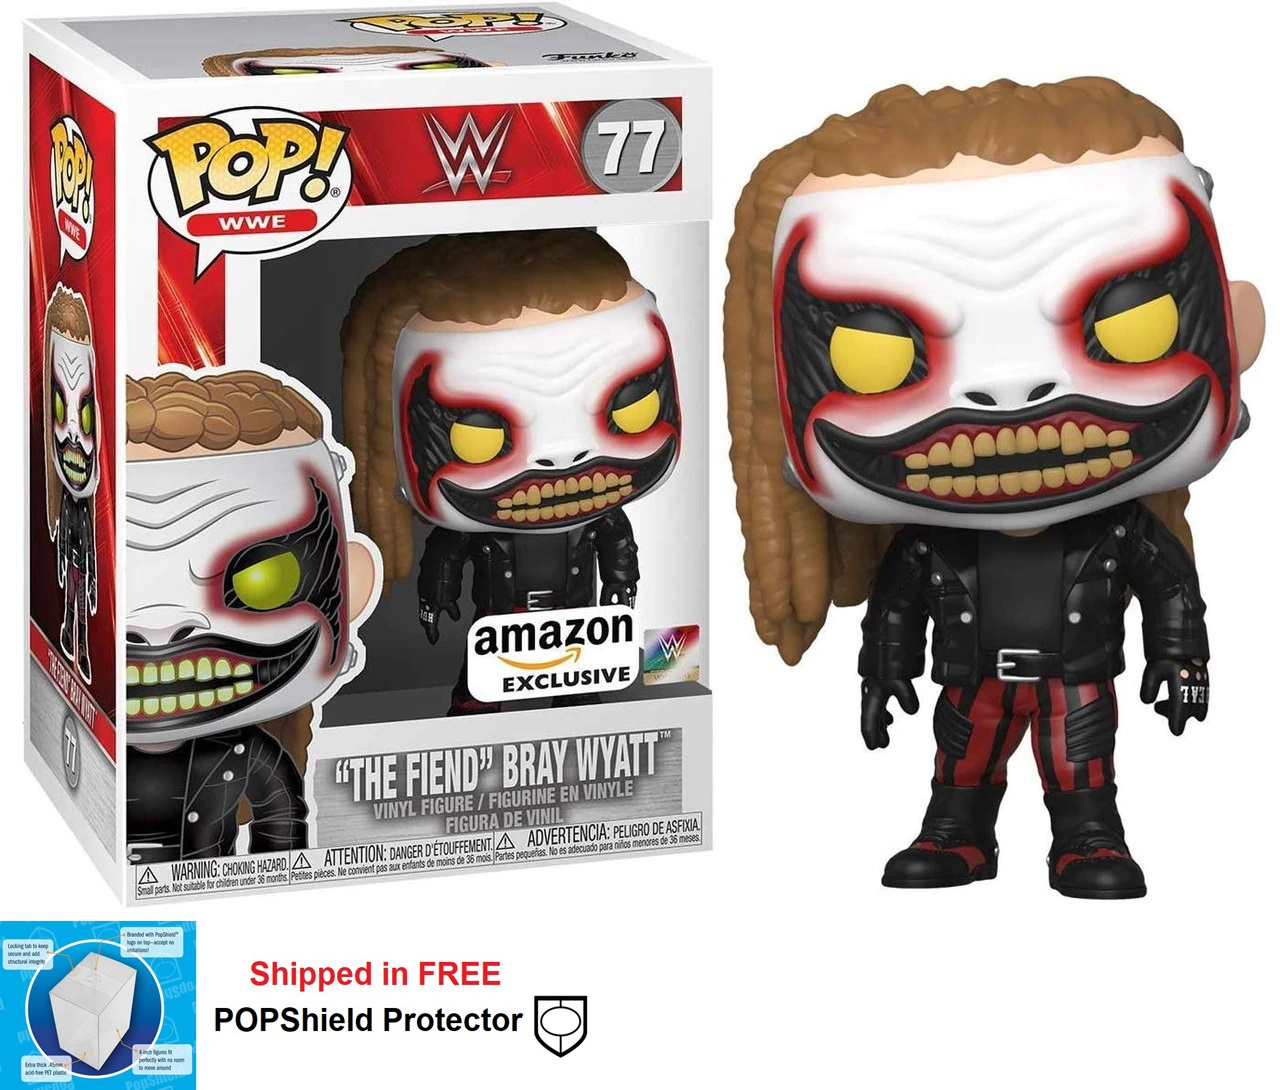 Funko POP WWE The Fiend Bray Wyatt Figure -#77